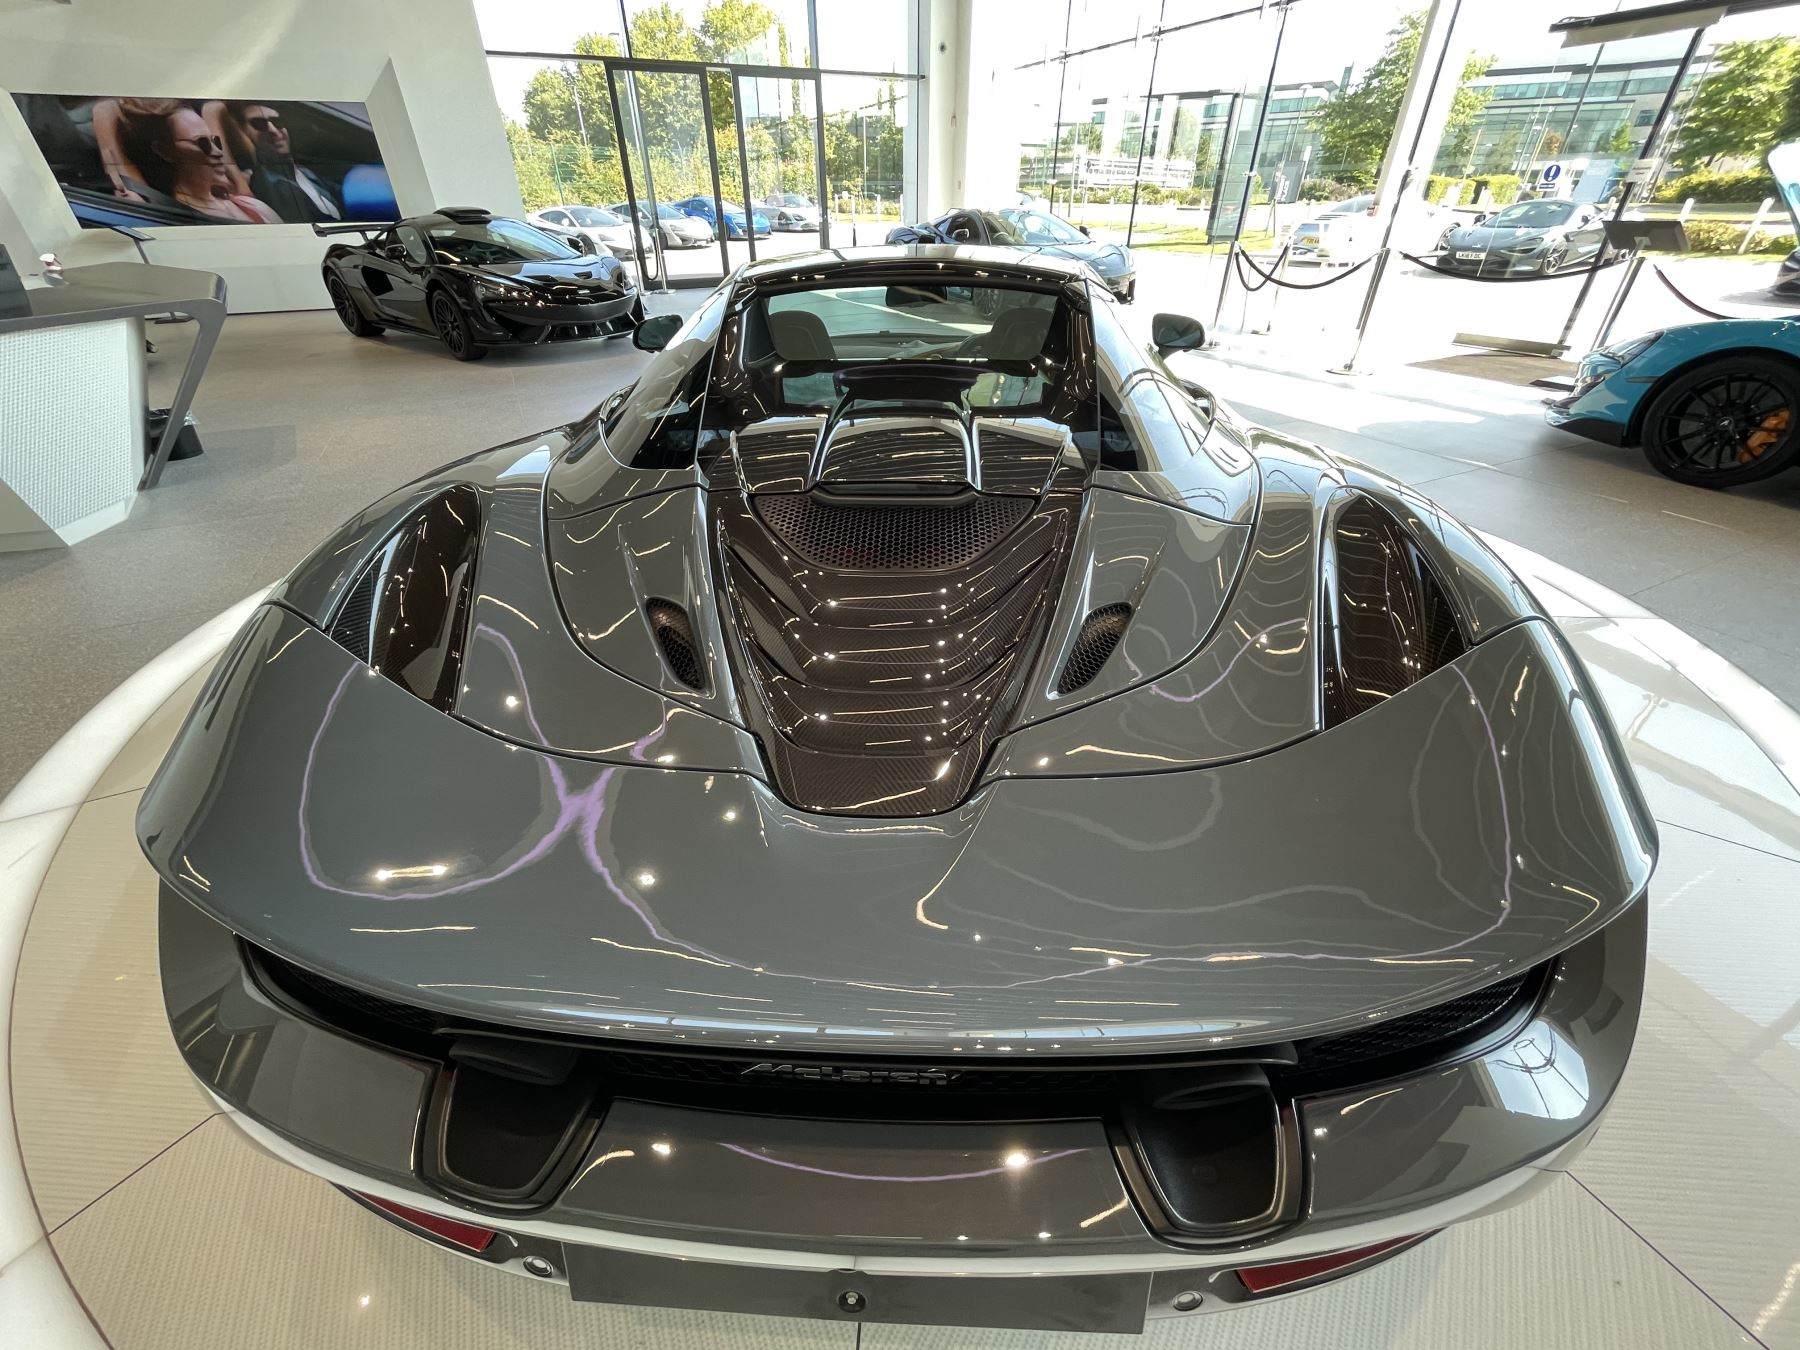 McLaren 720S Spider V8 2 DR PERFORMANCE VERY RARE COLOUR AND FULL CAR PPF image 22